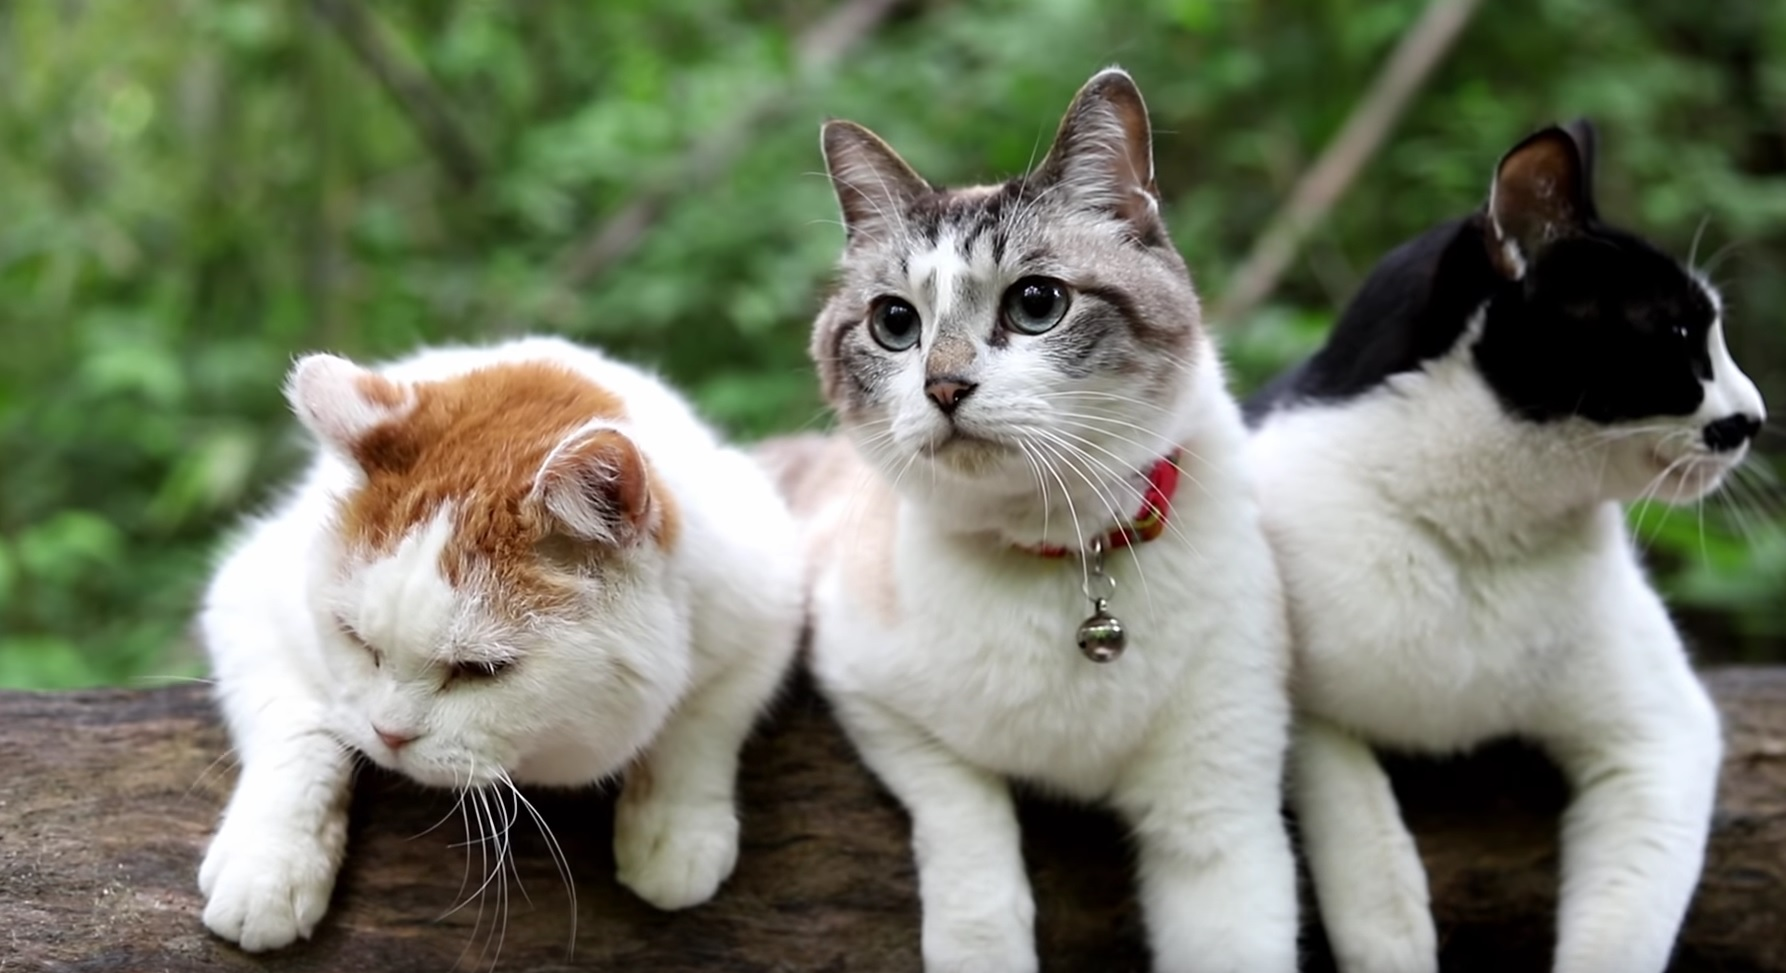 Cats Hanging Out In Nature